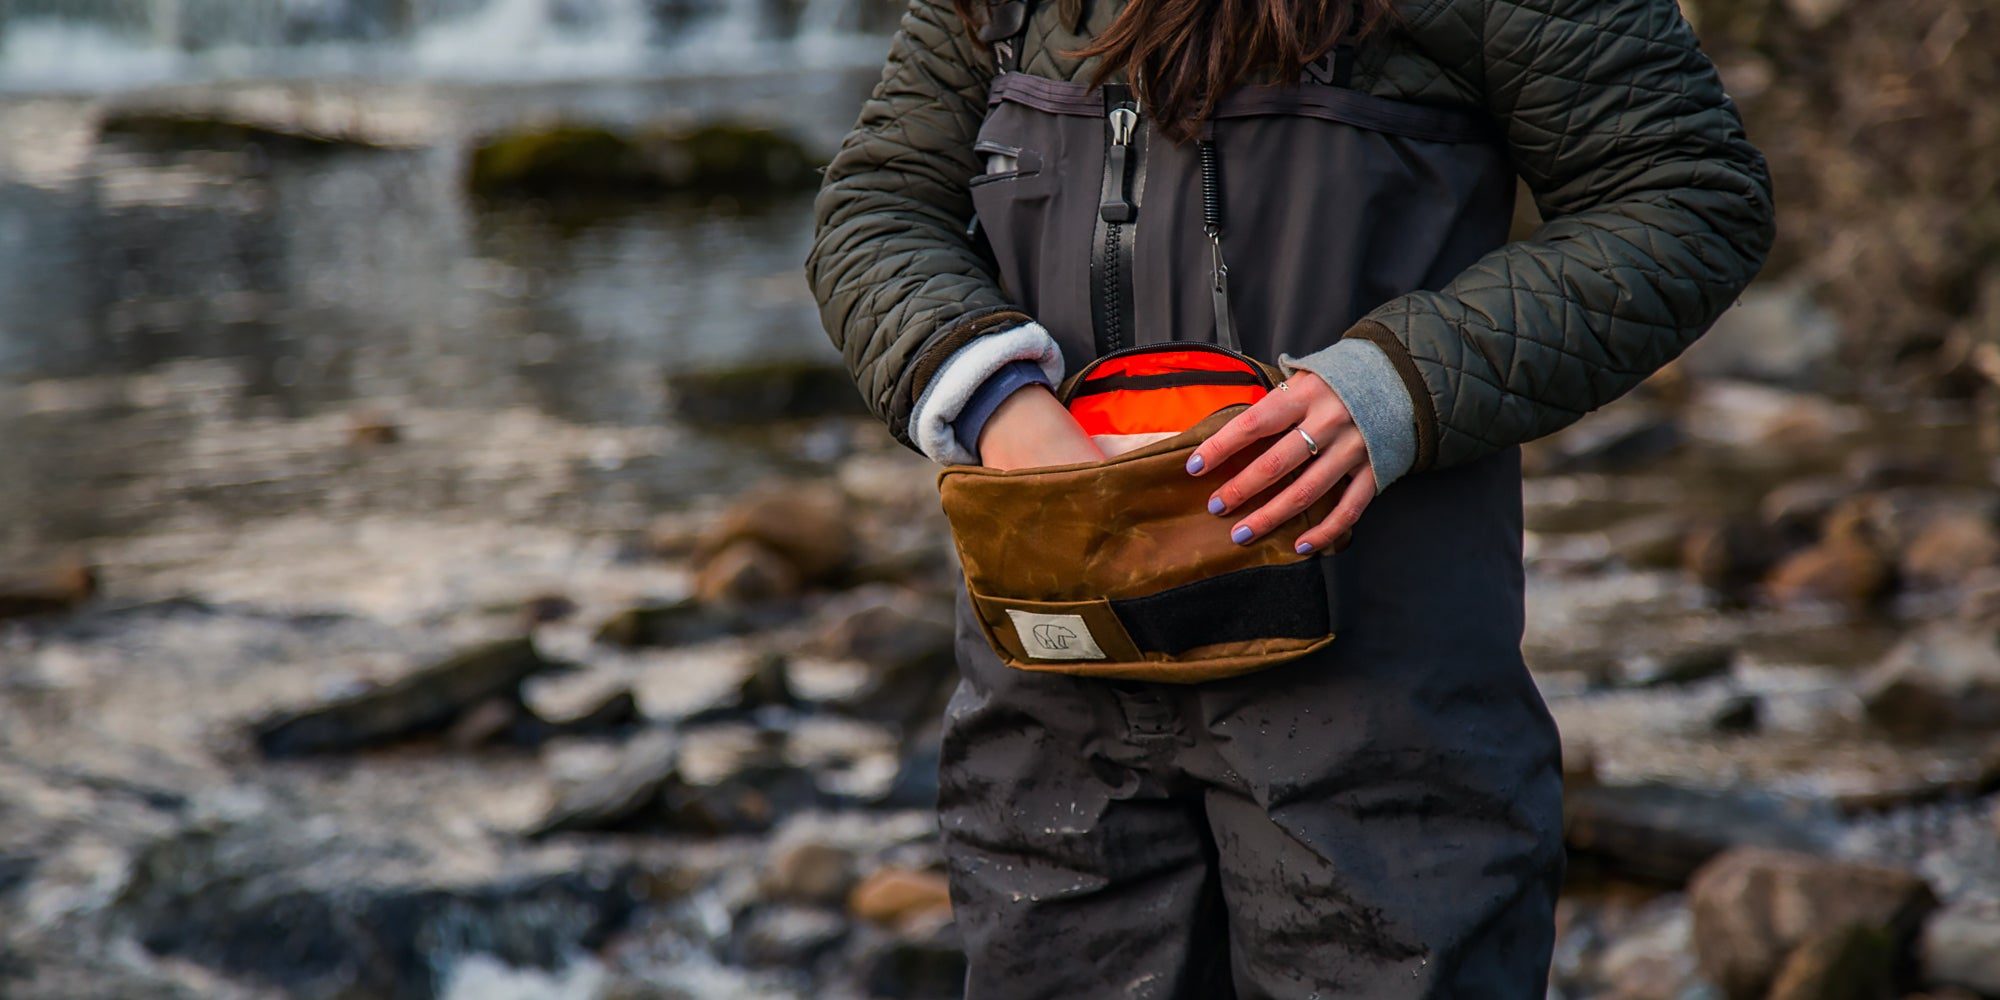 fly fishing bags made in England